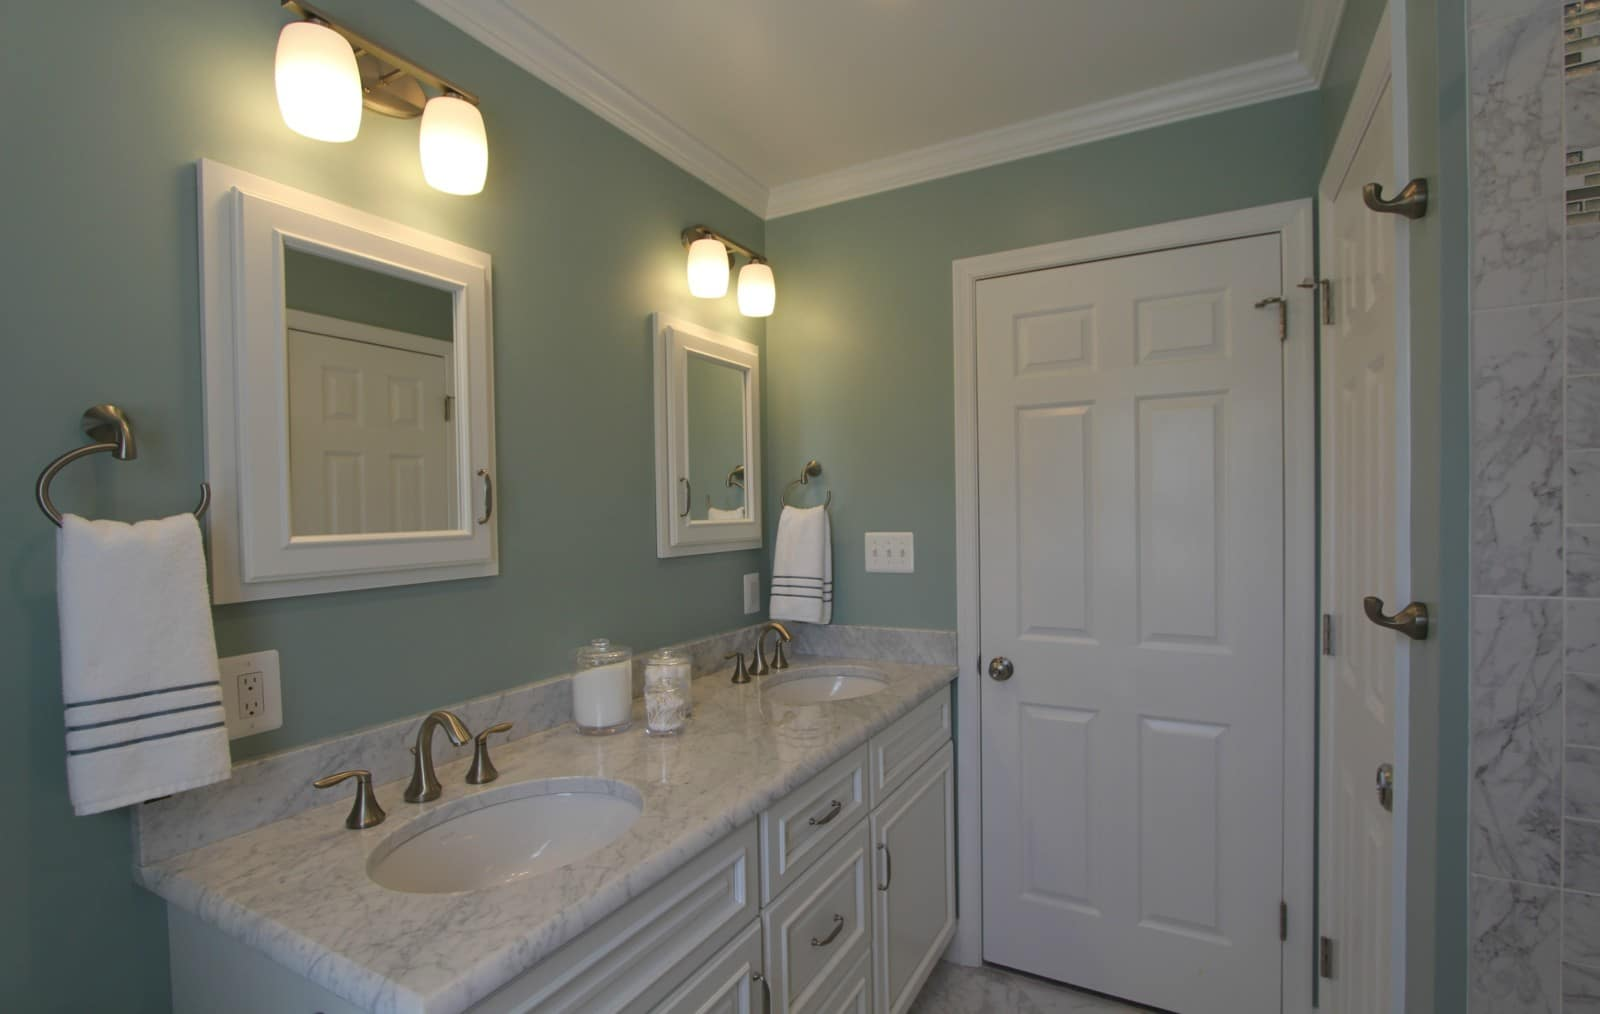 Carrera Marble Bathroom | Bathroom Remodeling Sage Green Carrera Marble Taylor Made